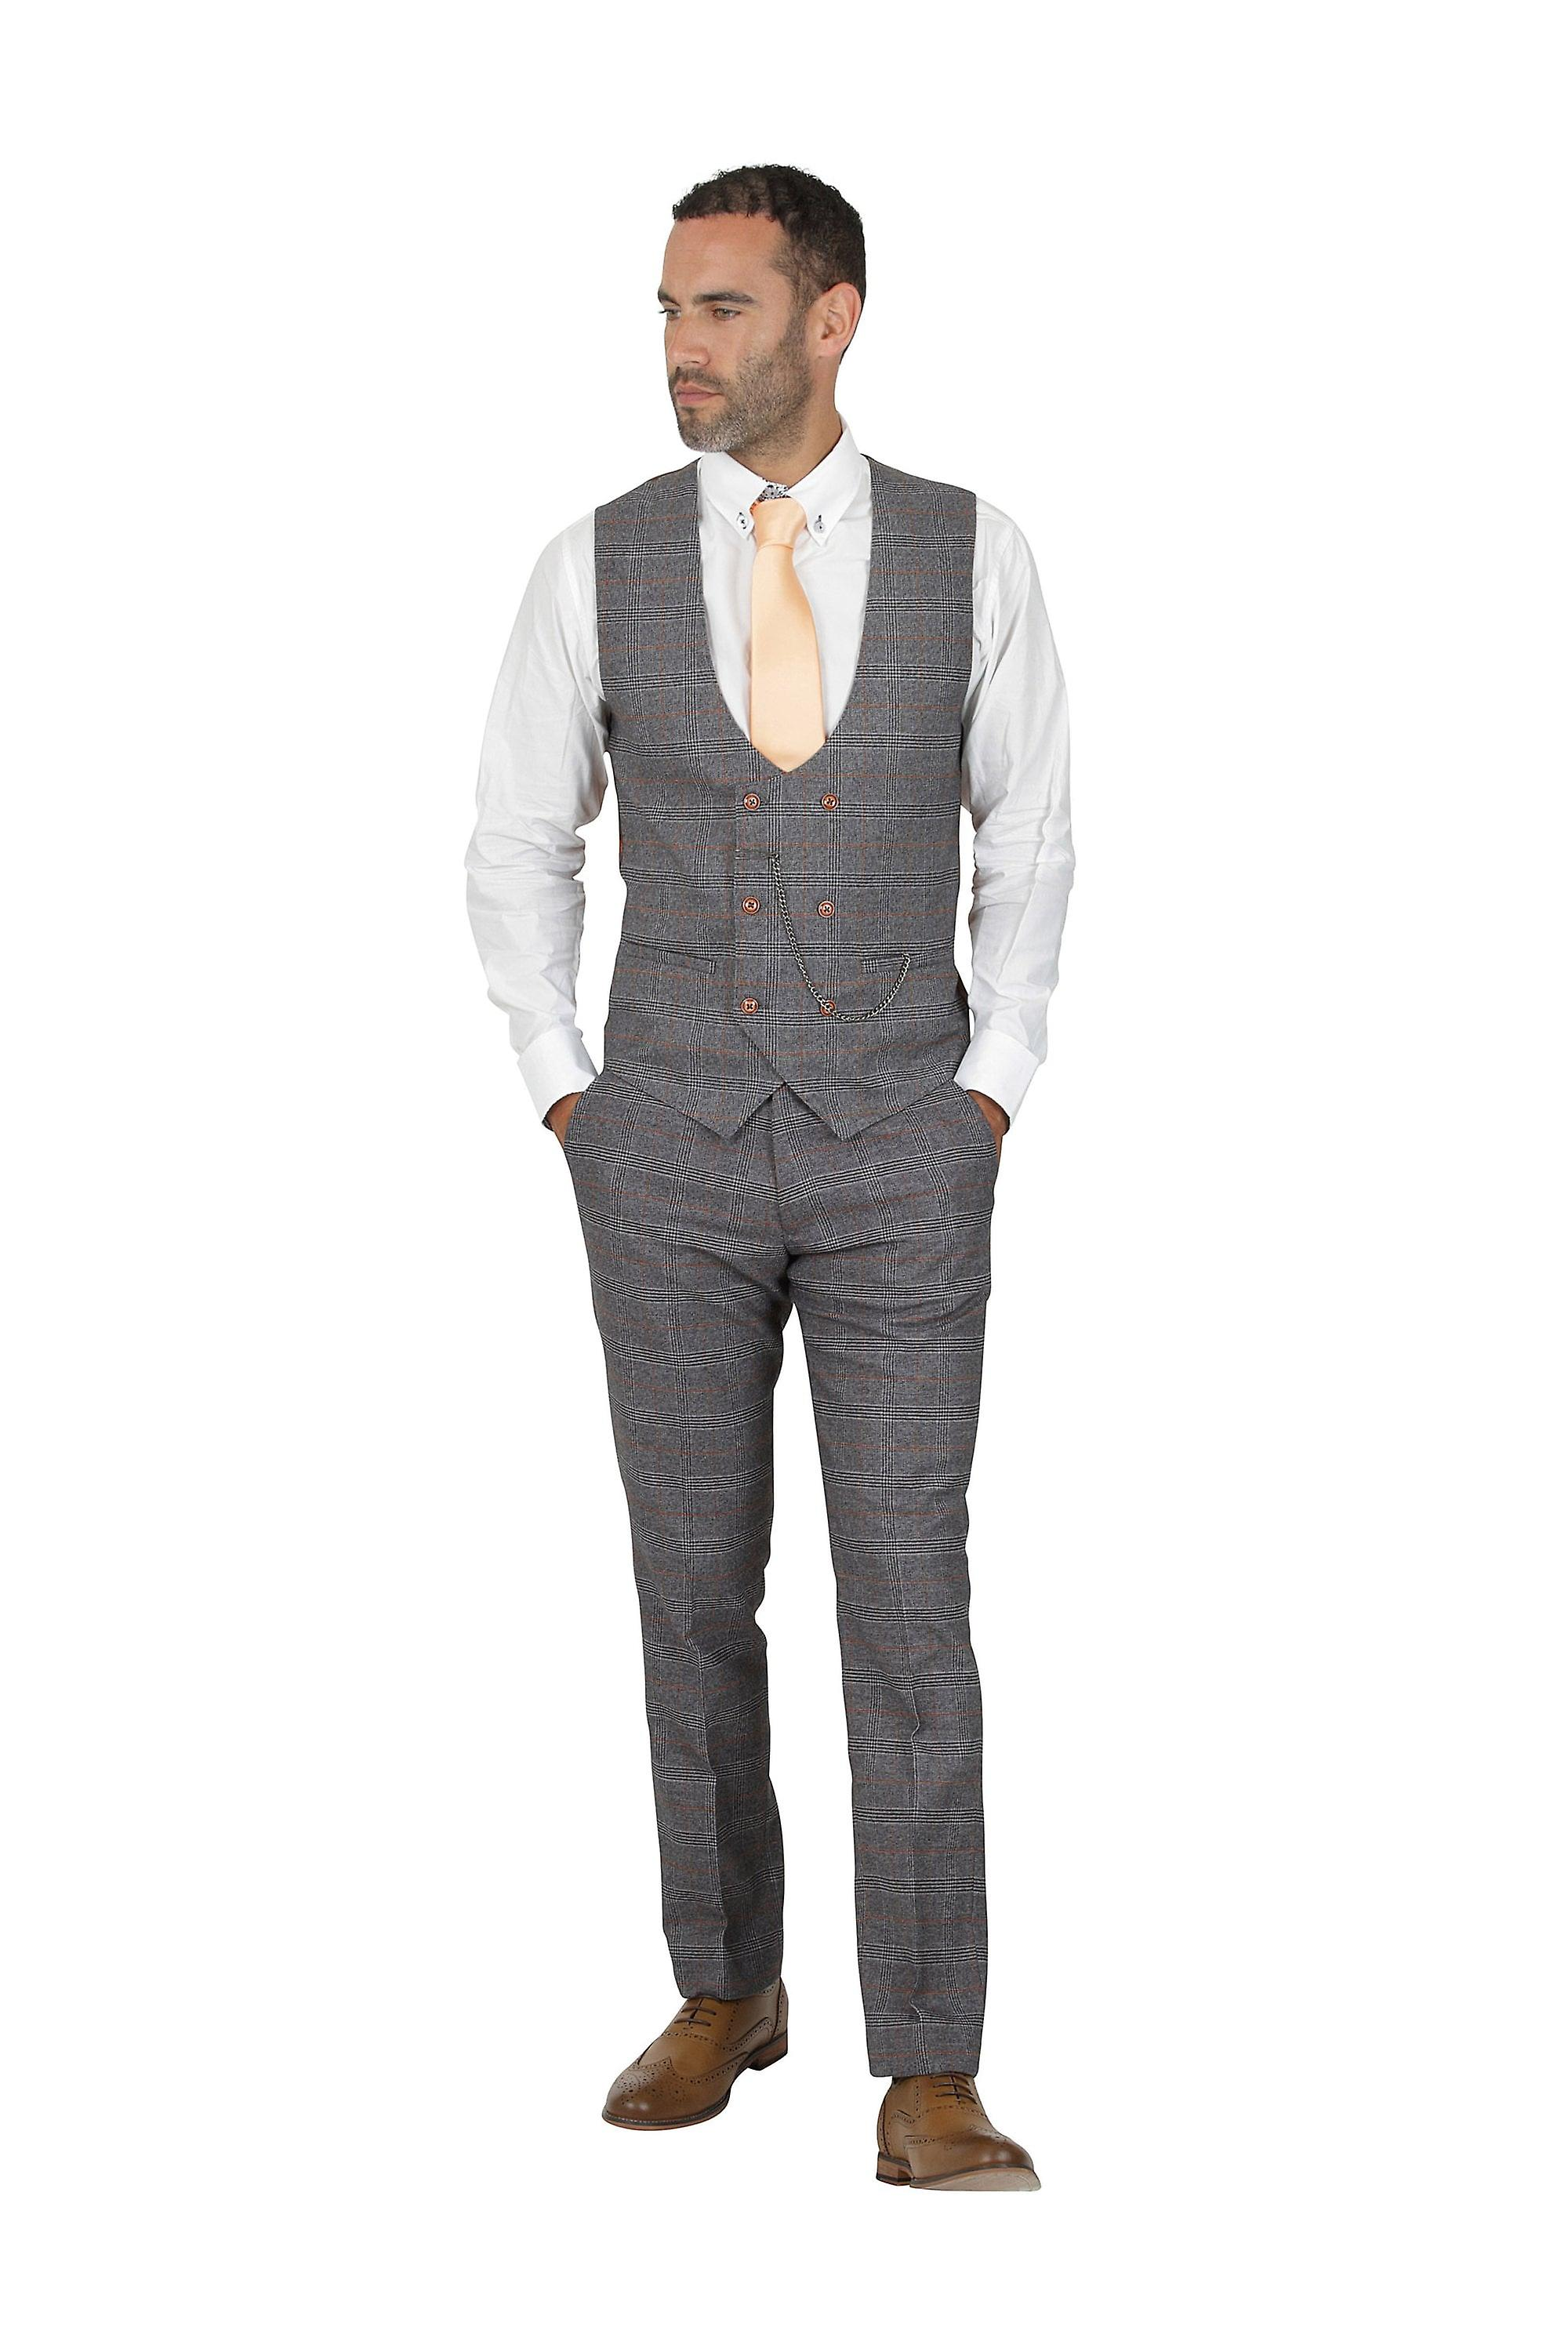 Marc Darcy Jenson Grey Tan Check Suit Double Breasted Waistcoat